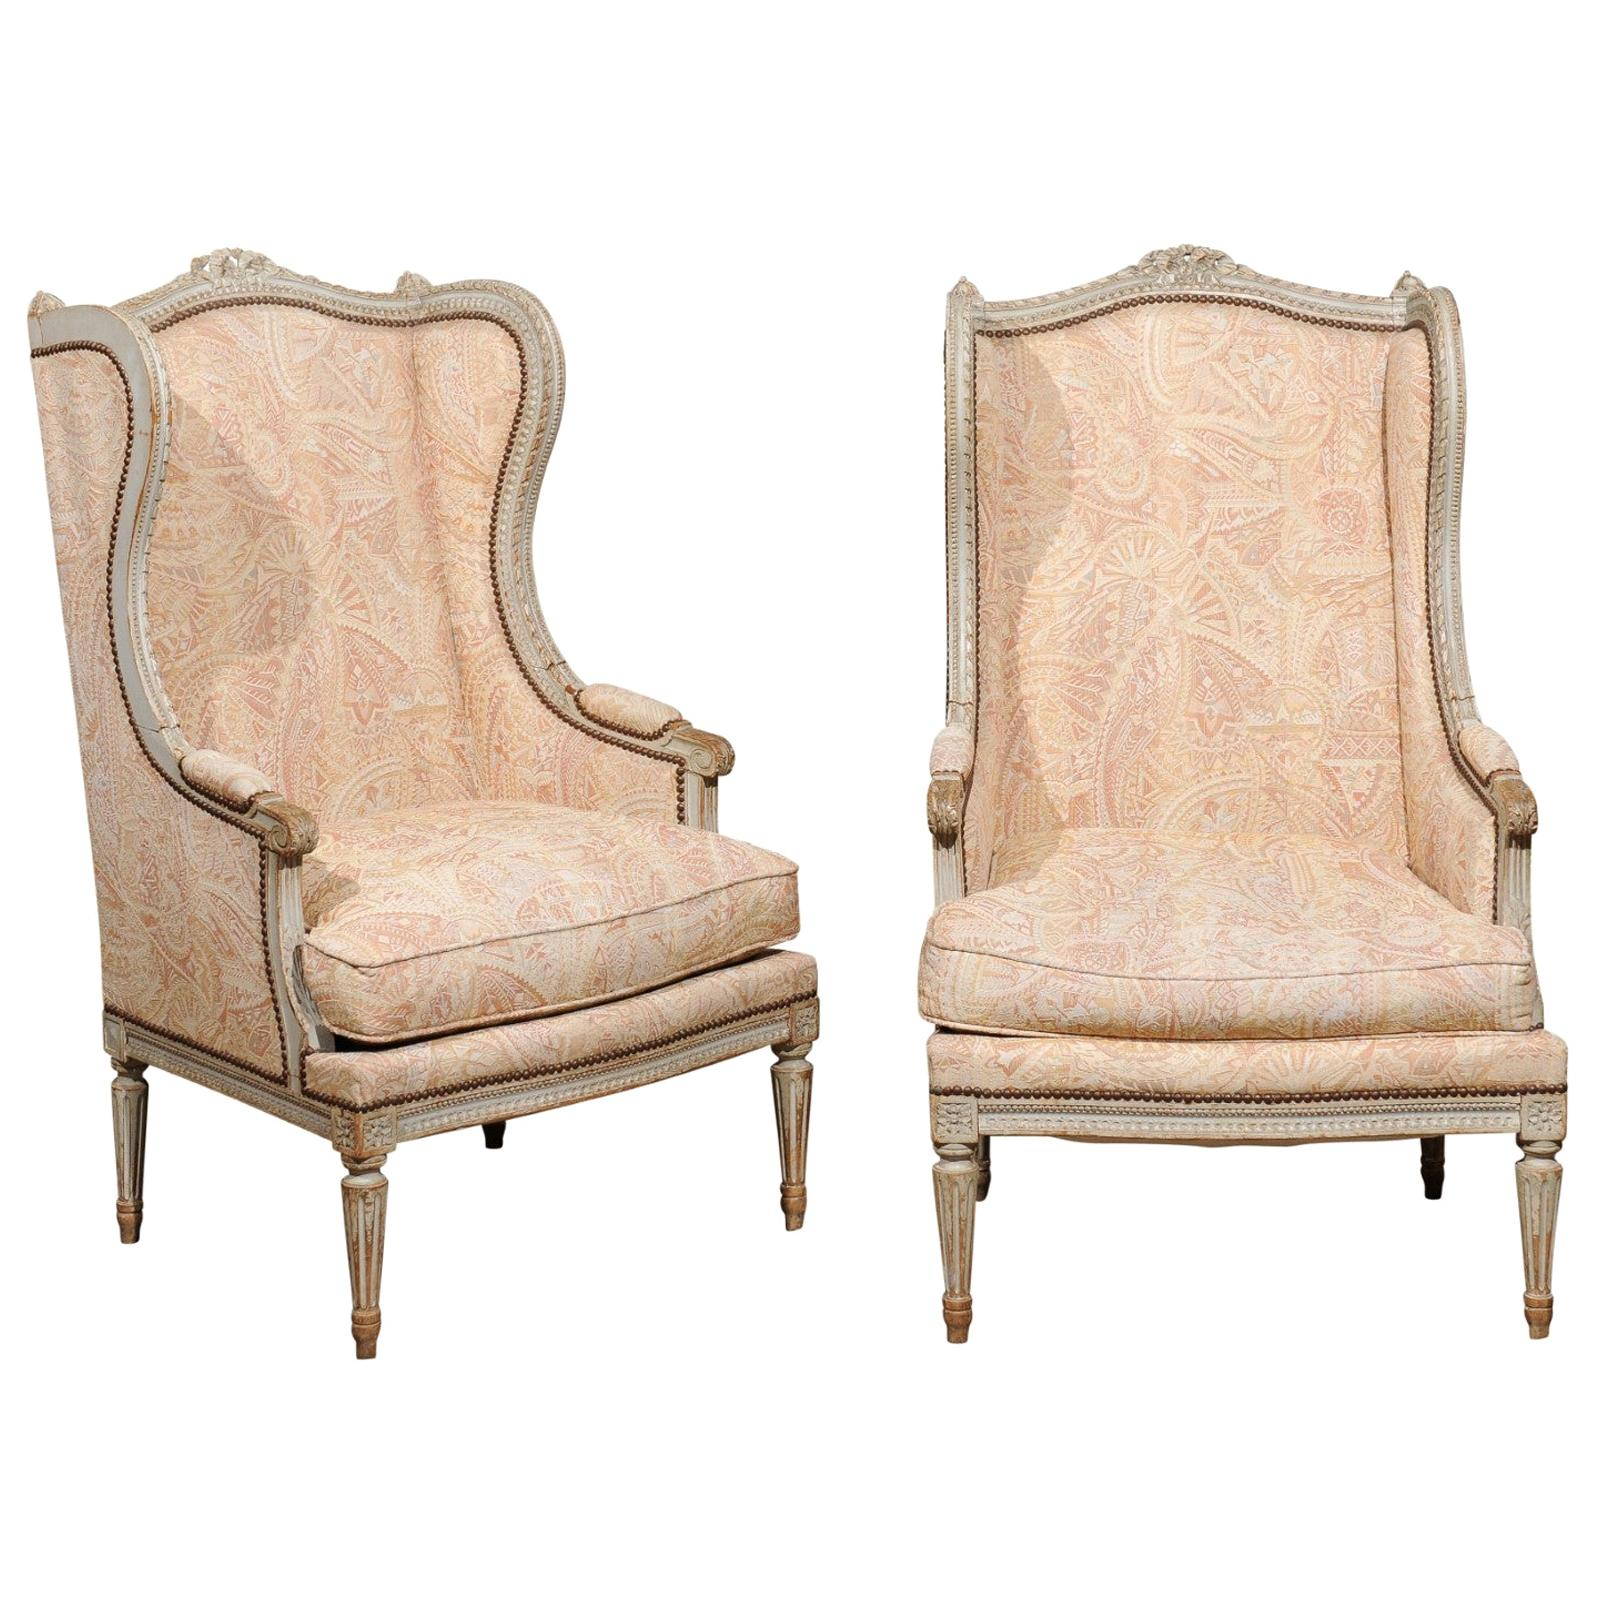 Pair of French Louis XVI Style Painted and Carved Wooden Bergères à Oreilles